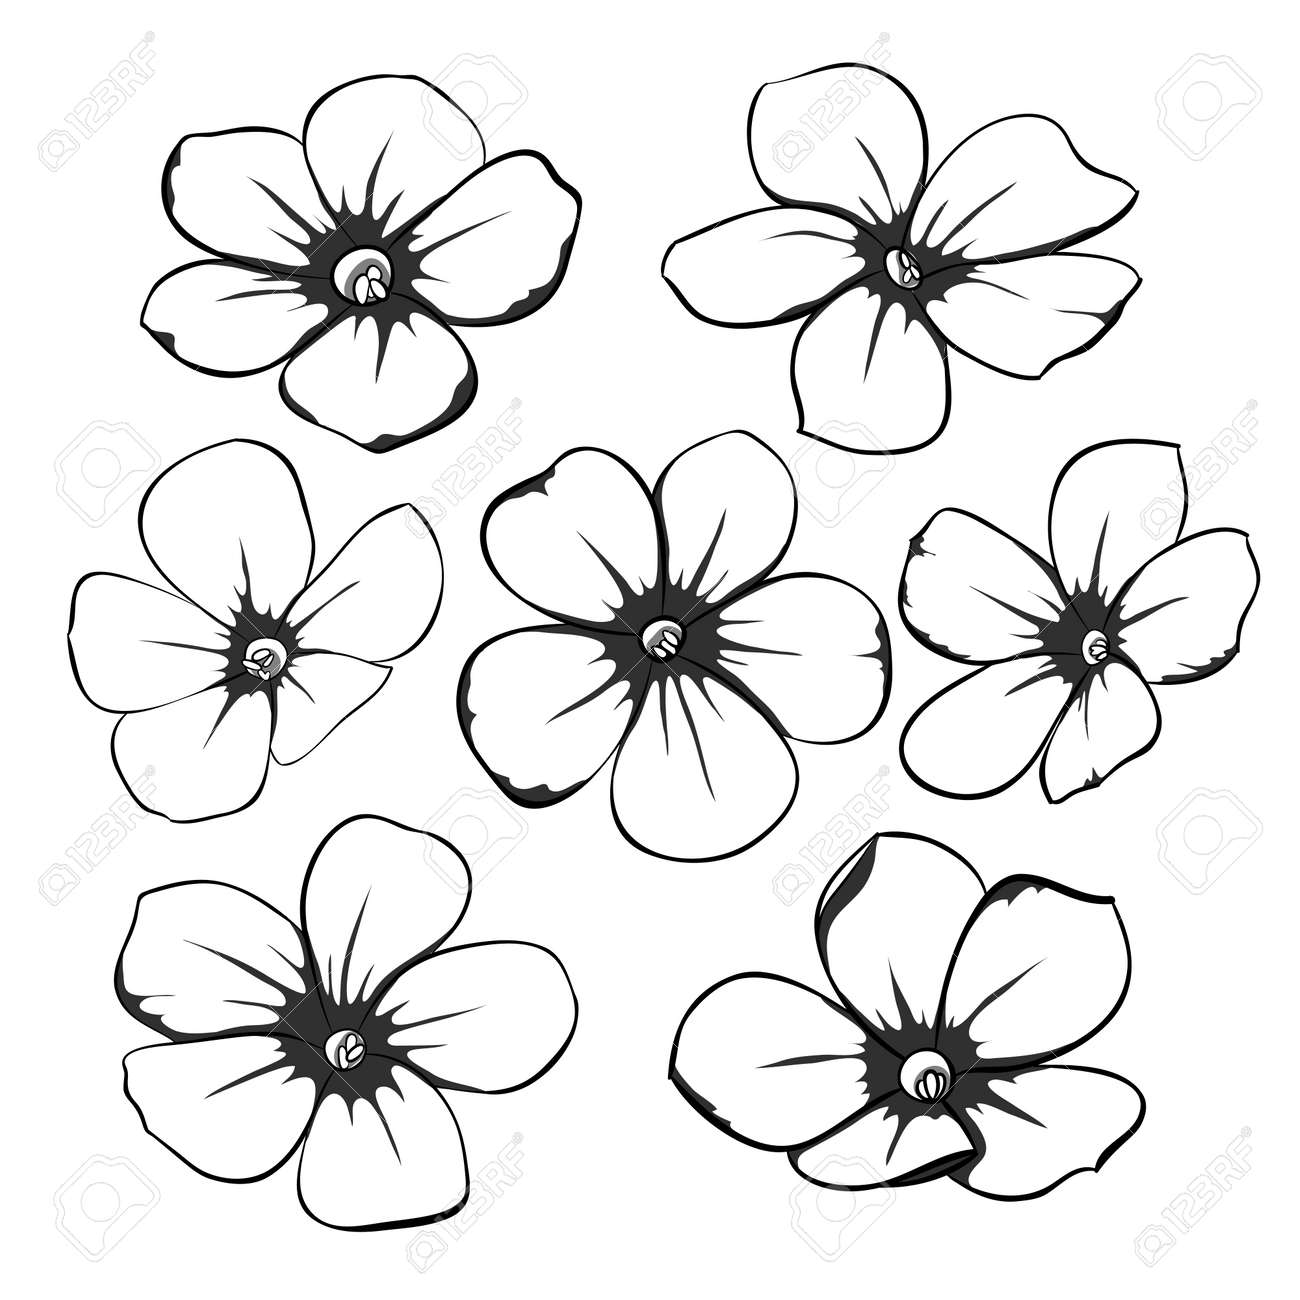 Beautiful Monochrome Black And White Floral Collection With Leaves